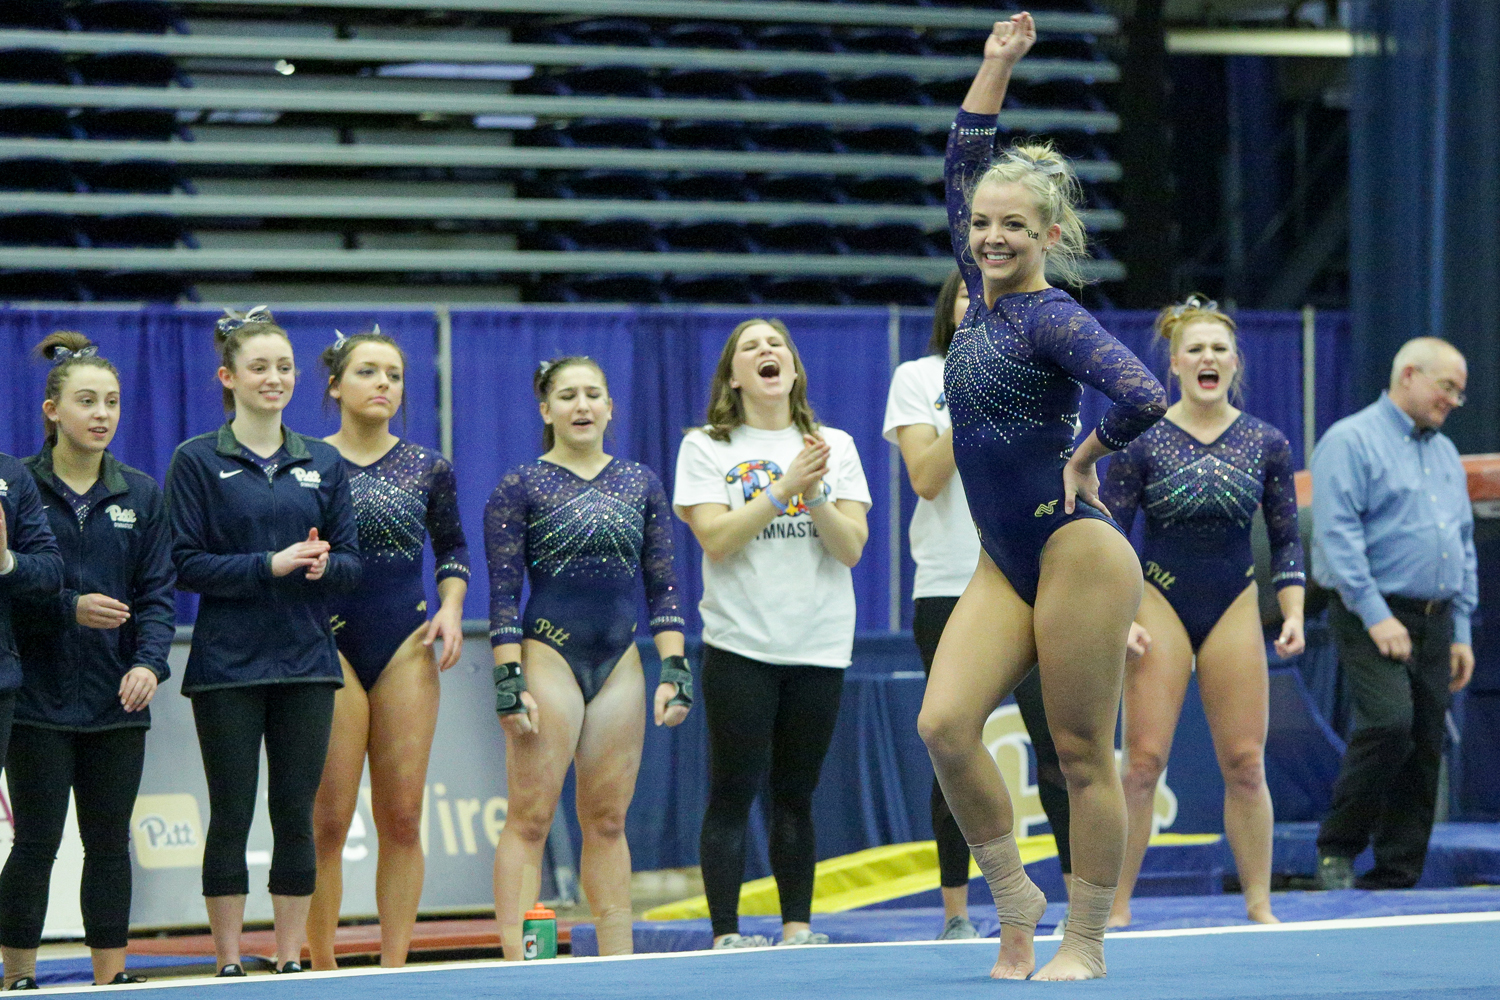 Senior Charli Spivey completes her floor performance during Pitt's 196.225-195.175 victory over New Hampshire on Jan. 20, 2018.